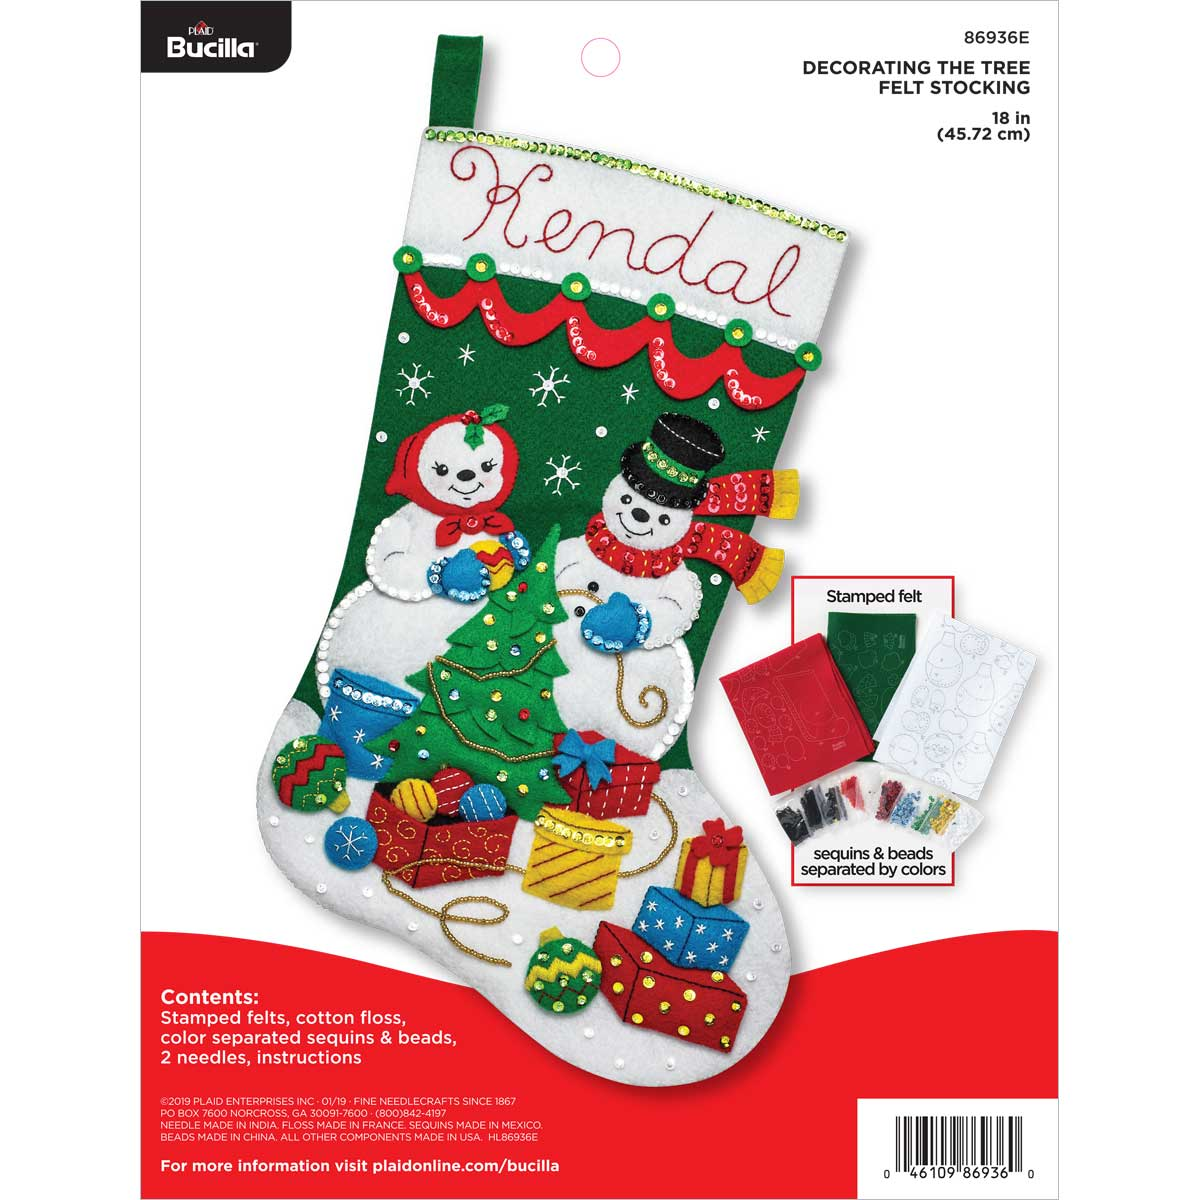 Bucilla ® Seasonal - Felt - Stocking Kits - Decorating the Tree